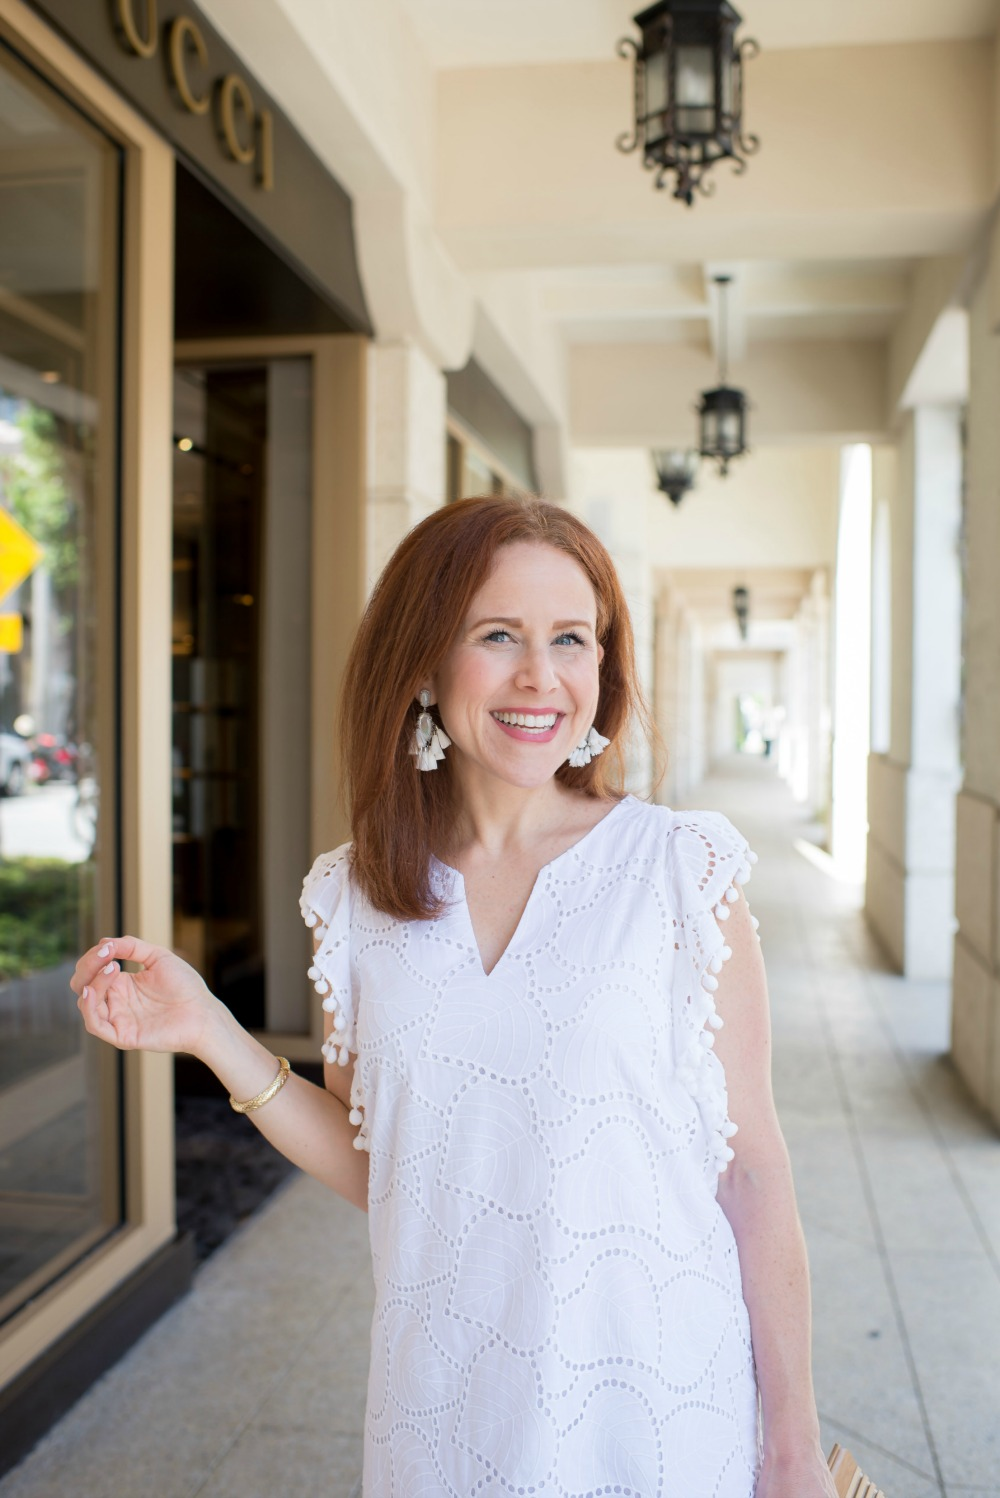 White dress with white accessories for summer // the modern savvy - The Little White Dress featured by popular Florida style blogger, The Modern Savvy